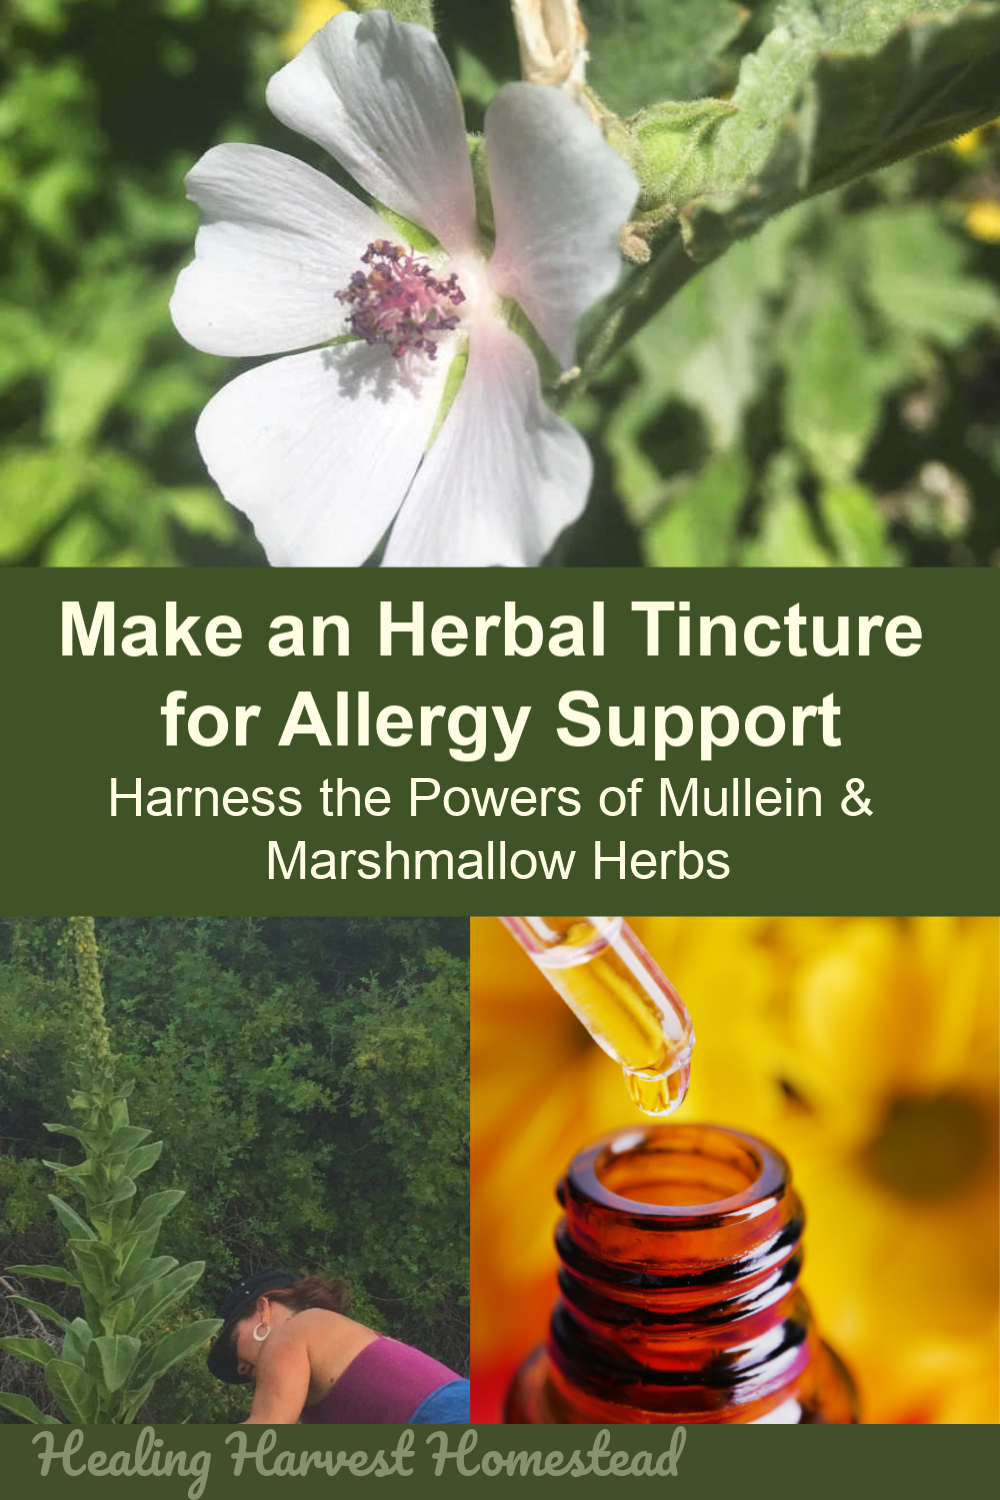 It's nearly time for seasonal allergies, and I've got an herbal remedy for you! This tincture is easy to make and only requires two herbs. Home remedies are often the best way to go. If you want to soothe inflamed sinuses and calm a runny nose, you'll want to get started making this tincture to day. You can also use the blend in tea form as well, in case you can't wait for the tincture. #herbal #homeremedy #naturalremedy #allergyseason #itchynose #runnynose #inflammation #sinus #congestion #tincture #healingharvesthomestead